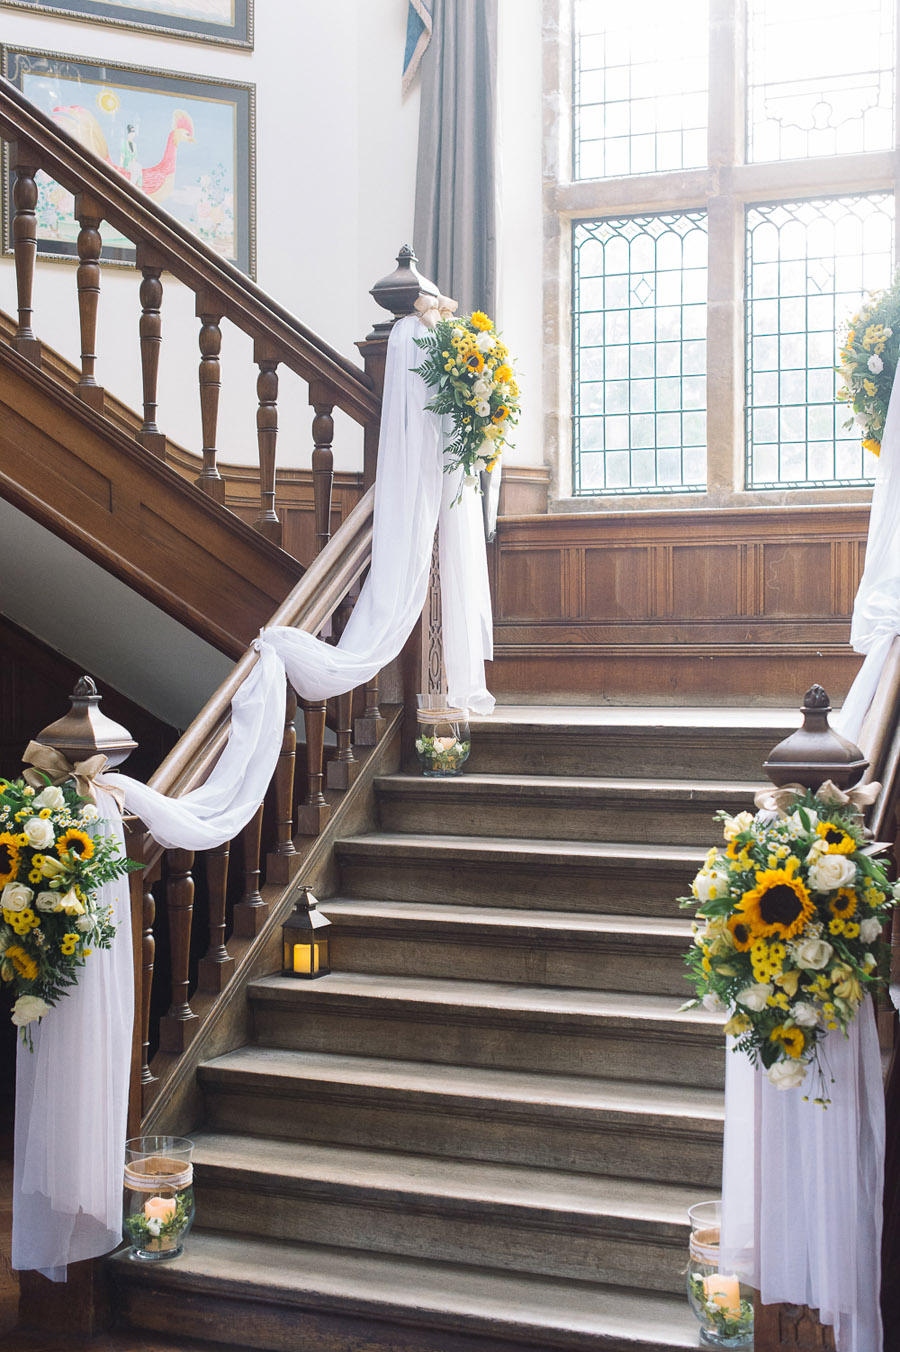 Cowdray estate wedding with sunflowers, images by Joanna Cleeve Photography (6)